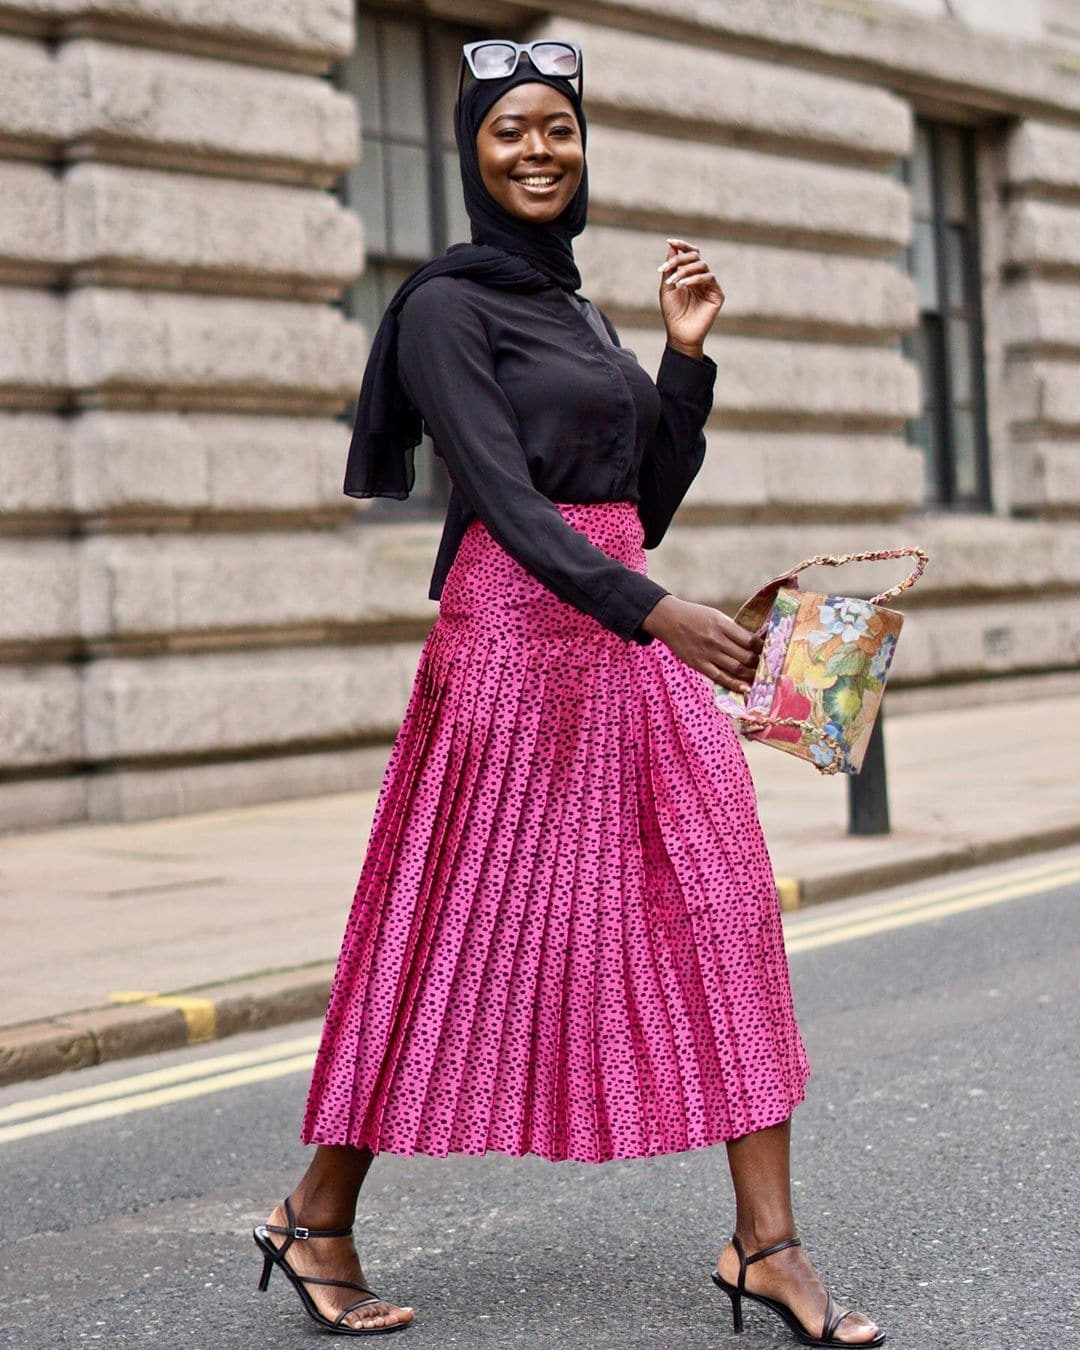 maryam-salam-13-haute-ways-to-rock-your-hot-pink-like-a-style-star